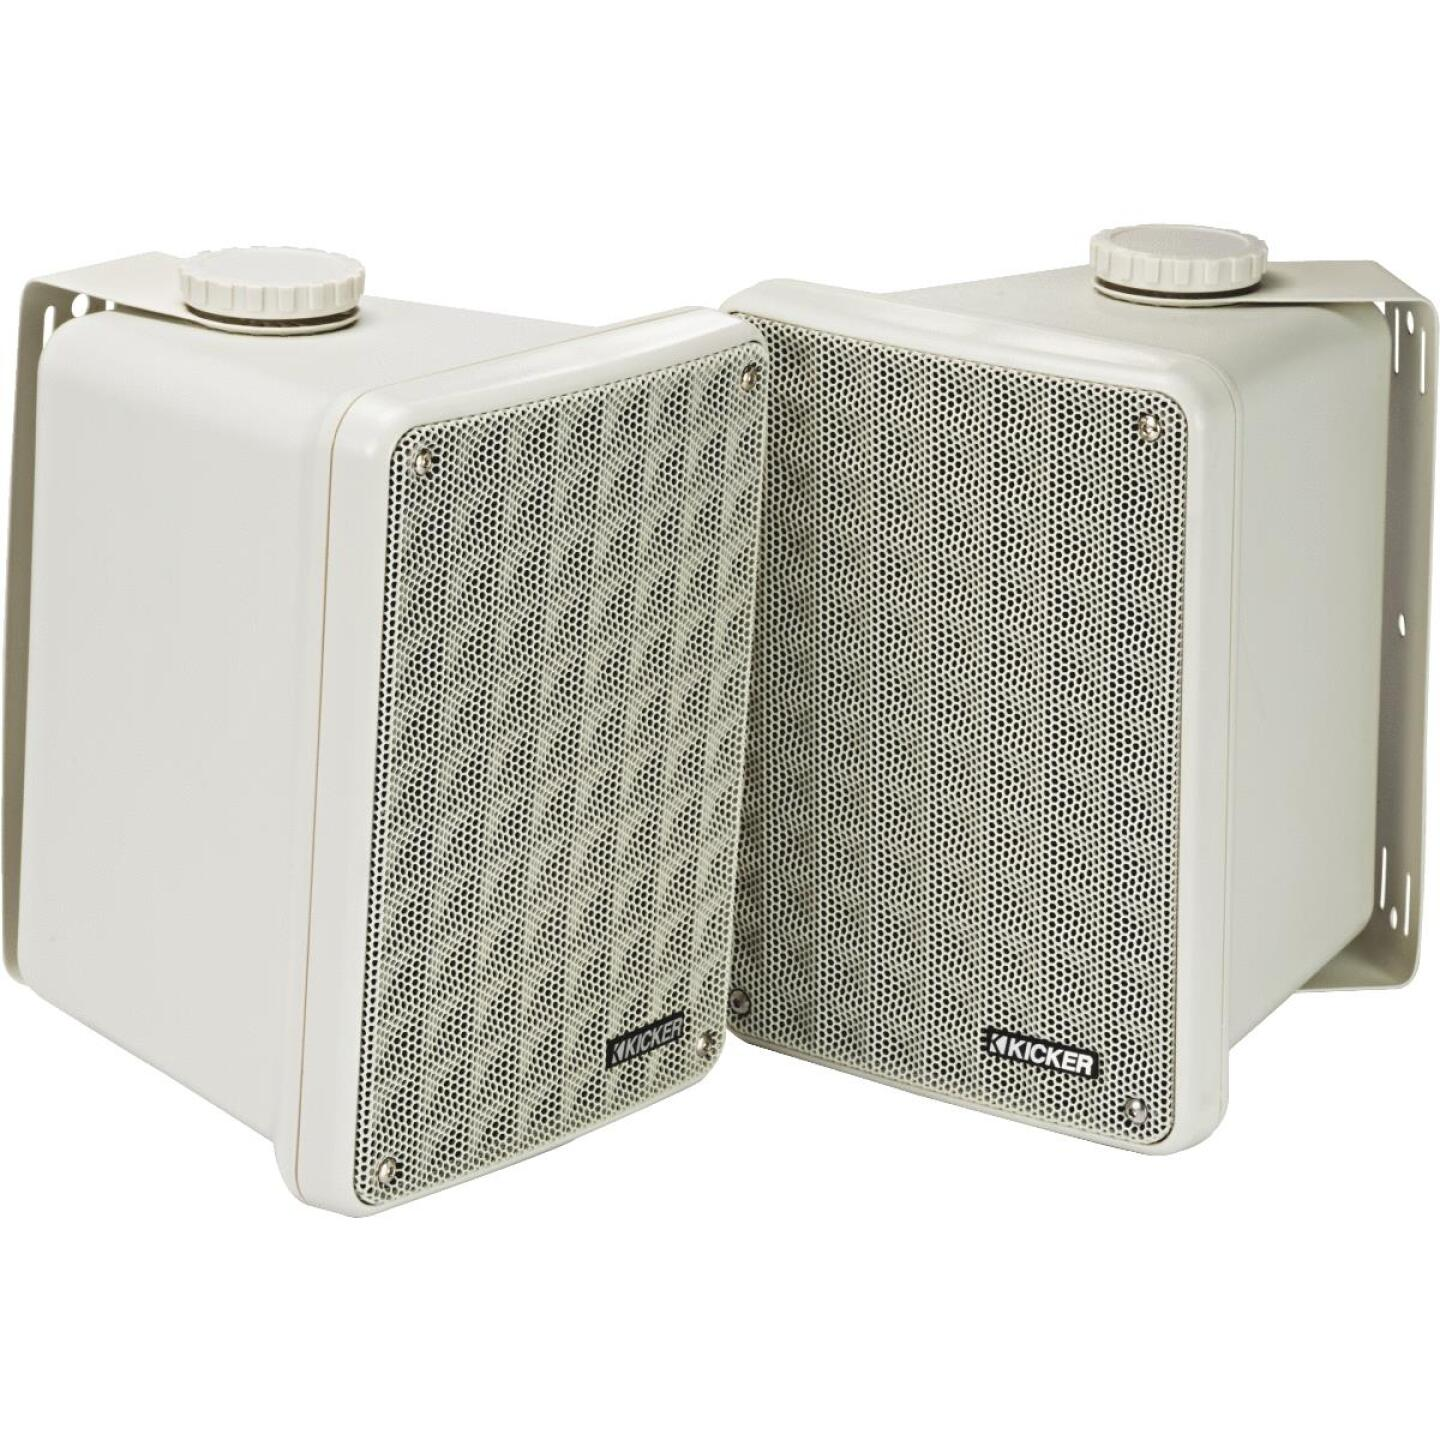 Kicker KB6000 2-Way White Weatherproof Outdoor Full Range Speaker (2-Pack) Image 1